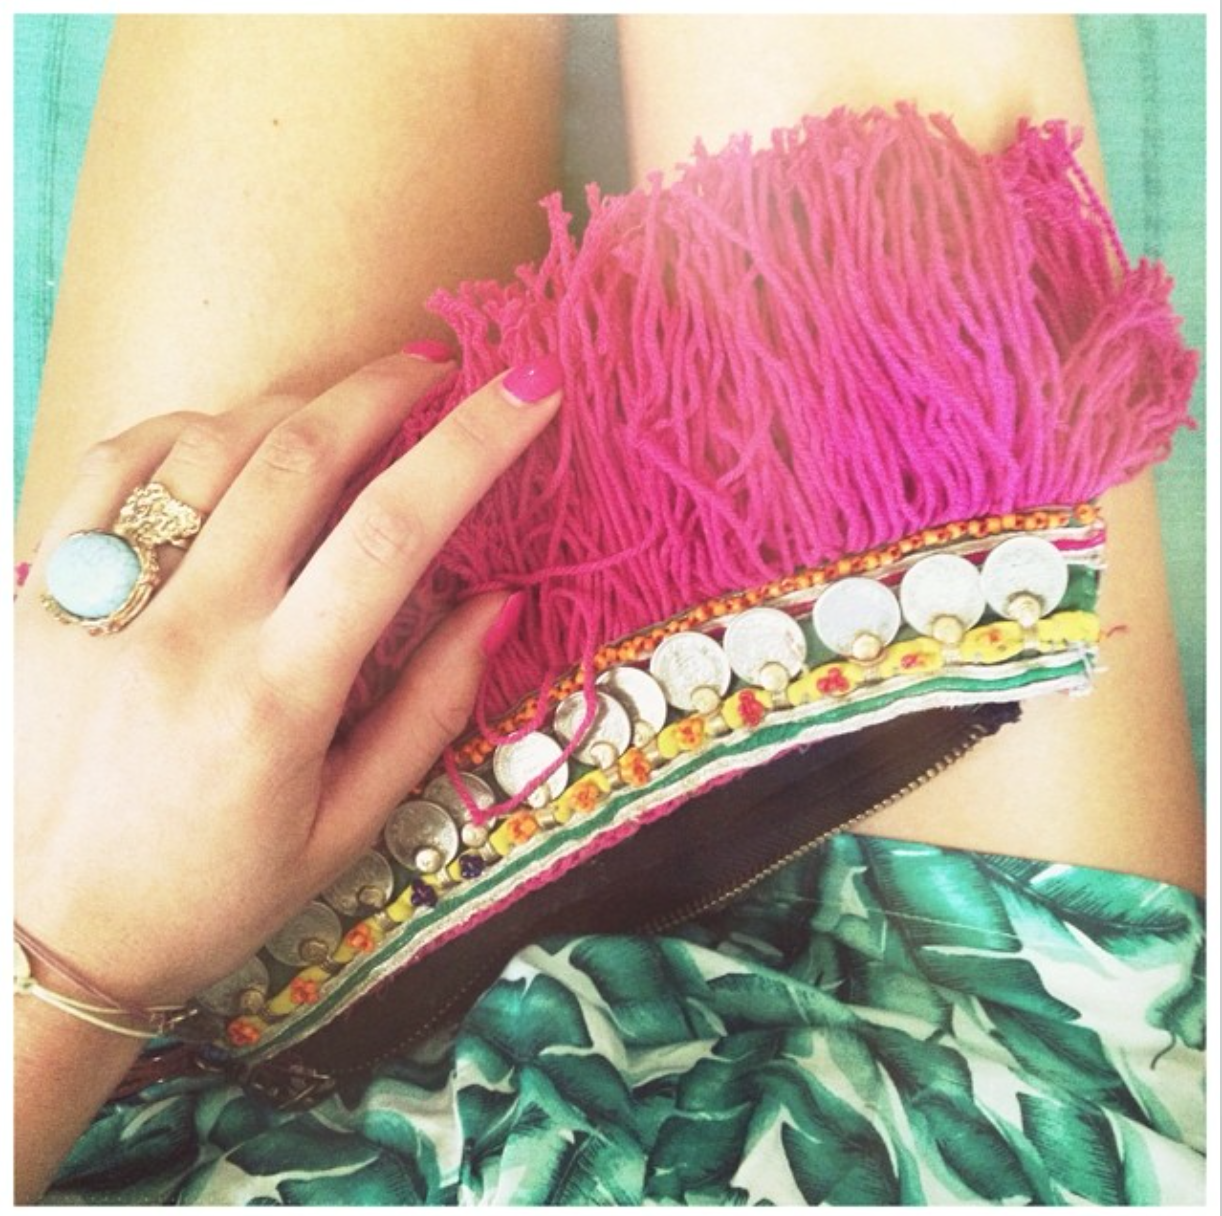 Shorts,Palm Print, Details, Jewelry, Eliott Man, Clutch